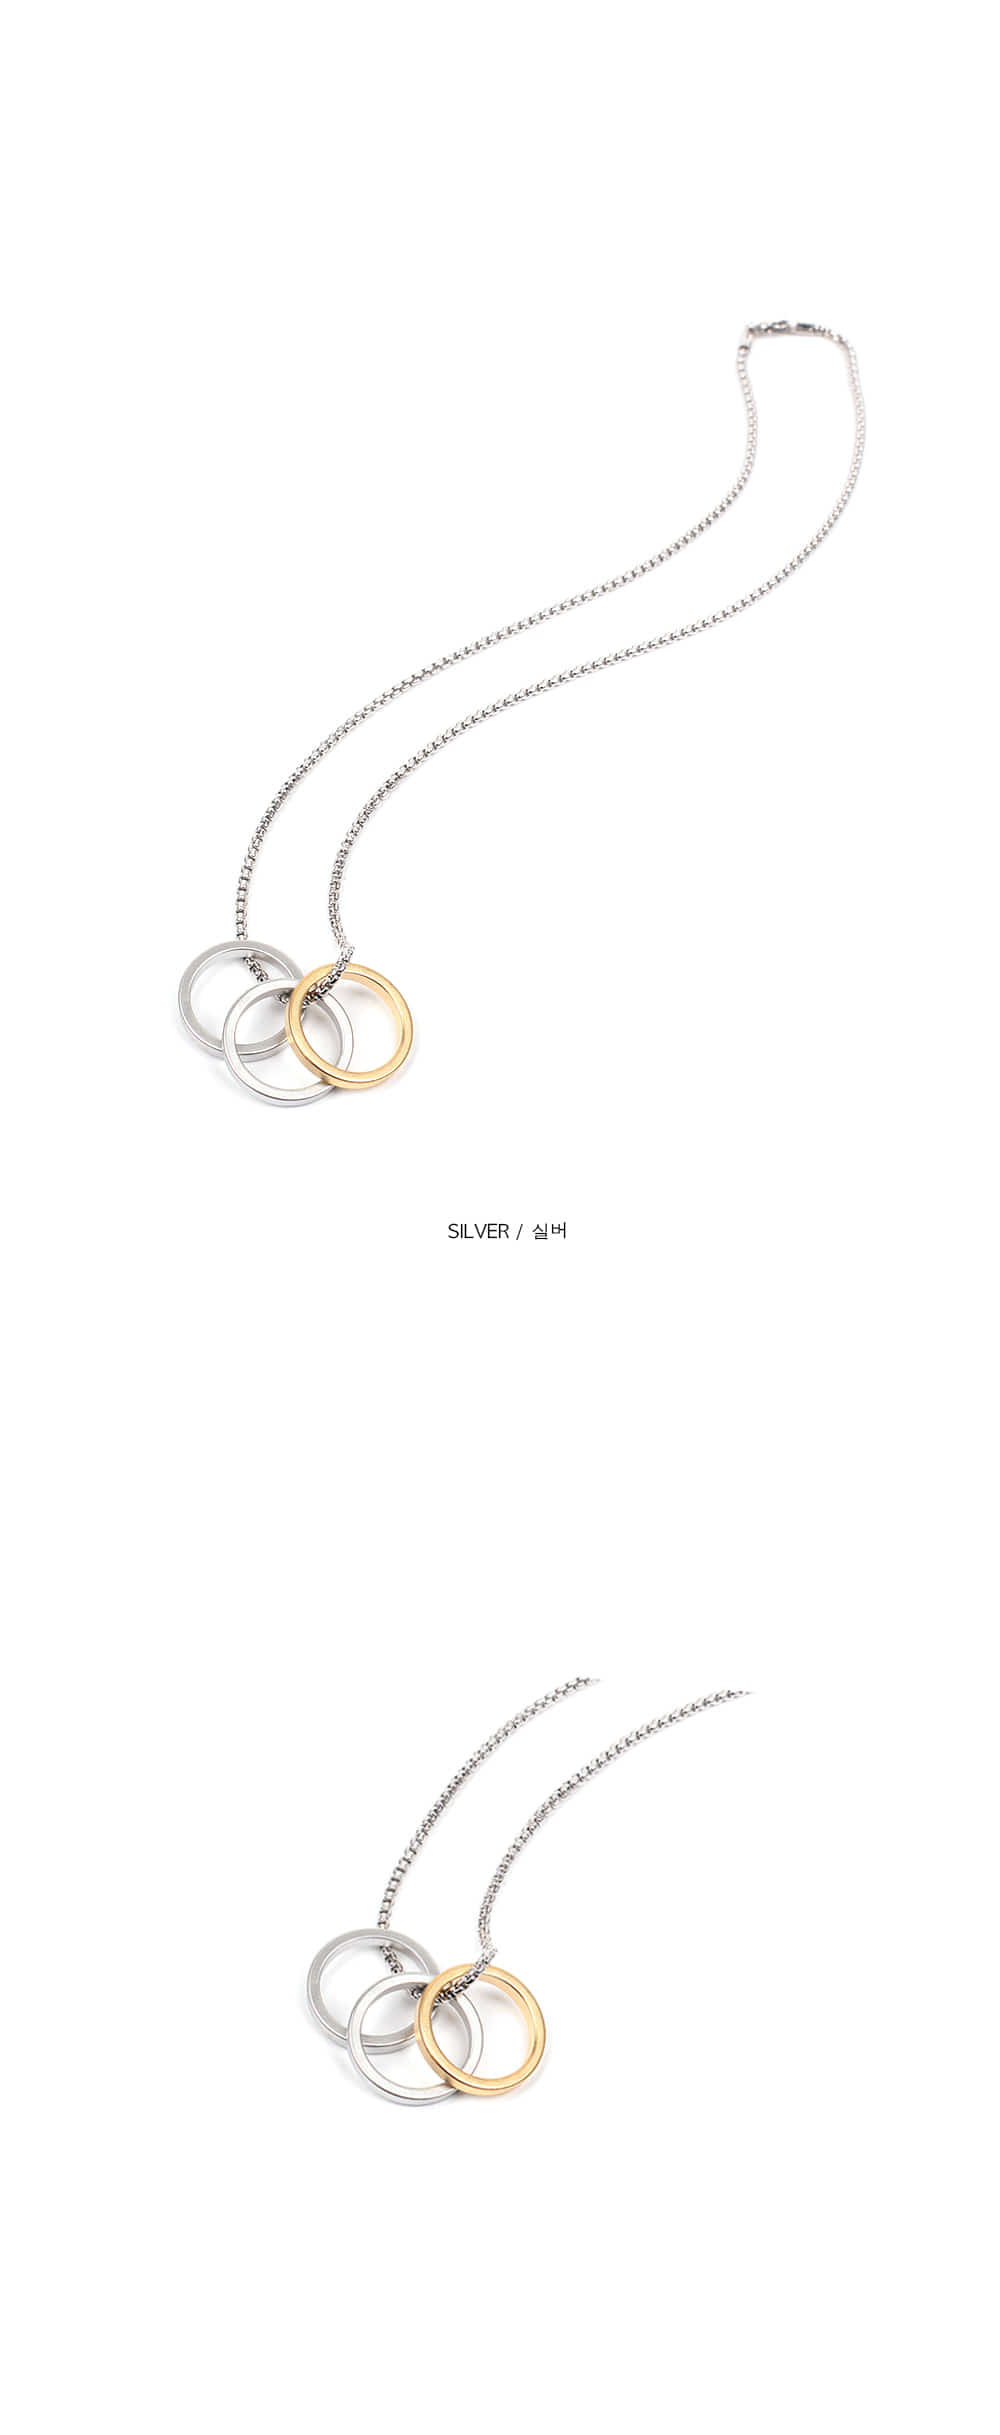 3-ring necklace